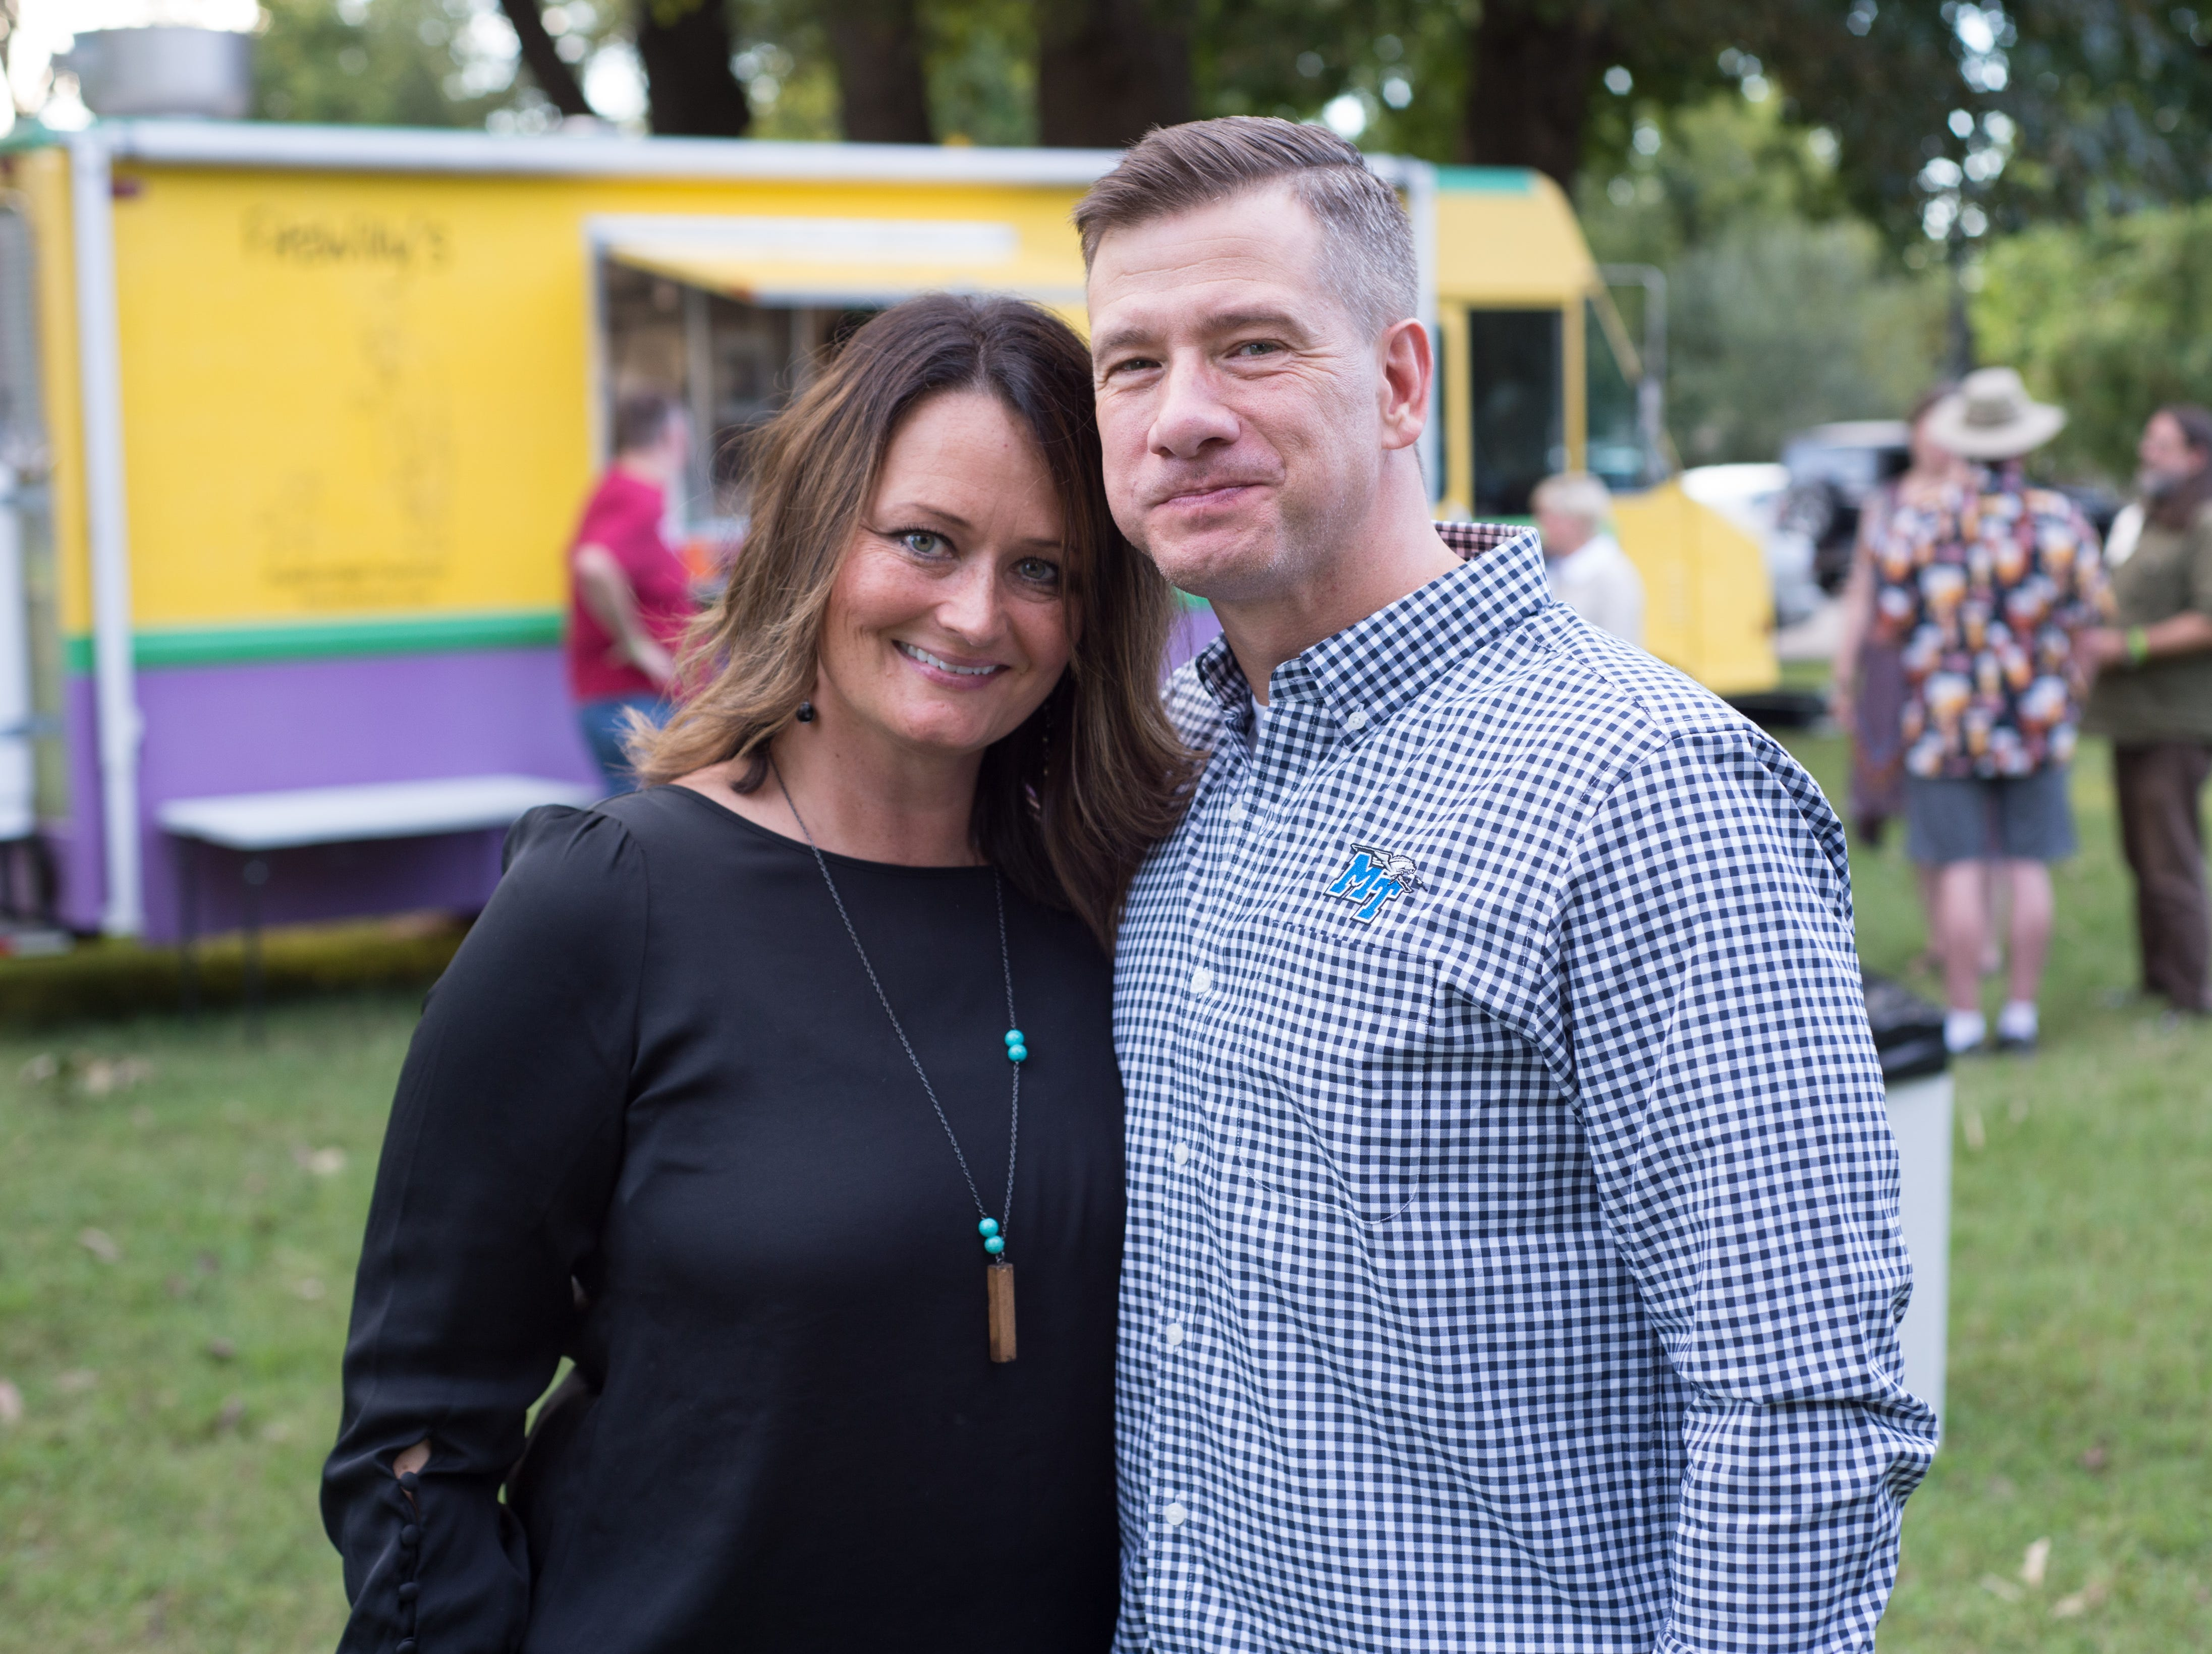 Cynthia and Ronnie Martin enjoy the Oktoberfest at Oaklands Mansion in Murfreesboro on Saturday, Sept. 29.